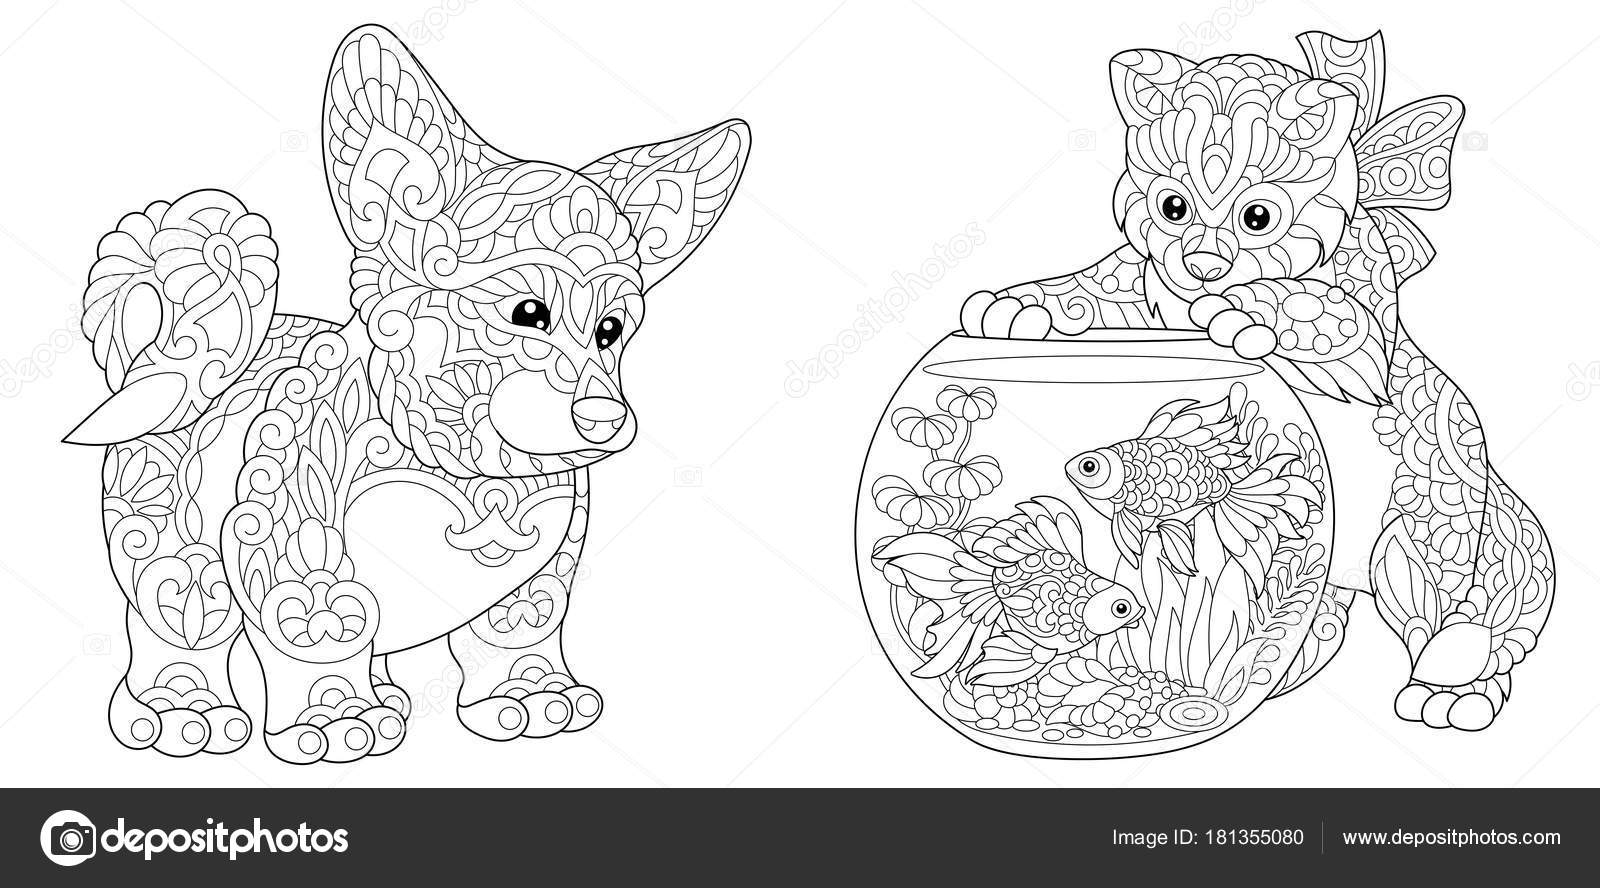 Coloring Page Adult Book Cardigan Welsh Corgi Dog Cat Playing With Goldfish In Aquarium Fish Bowl Antistress Freehand Sketch Collection